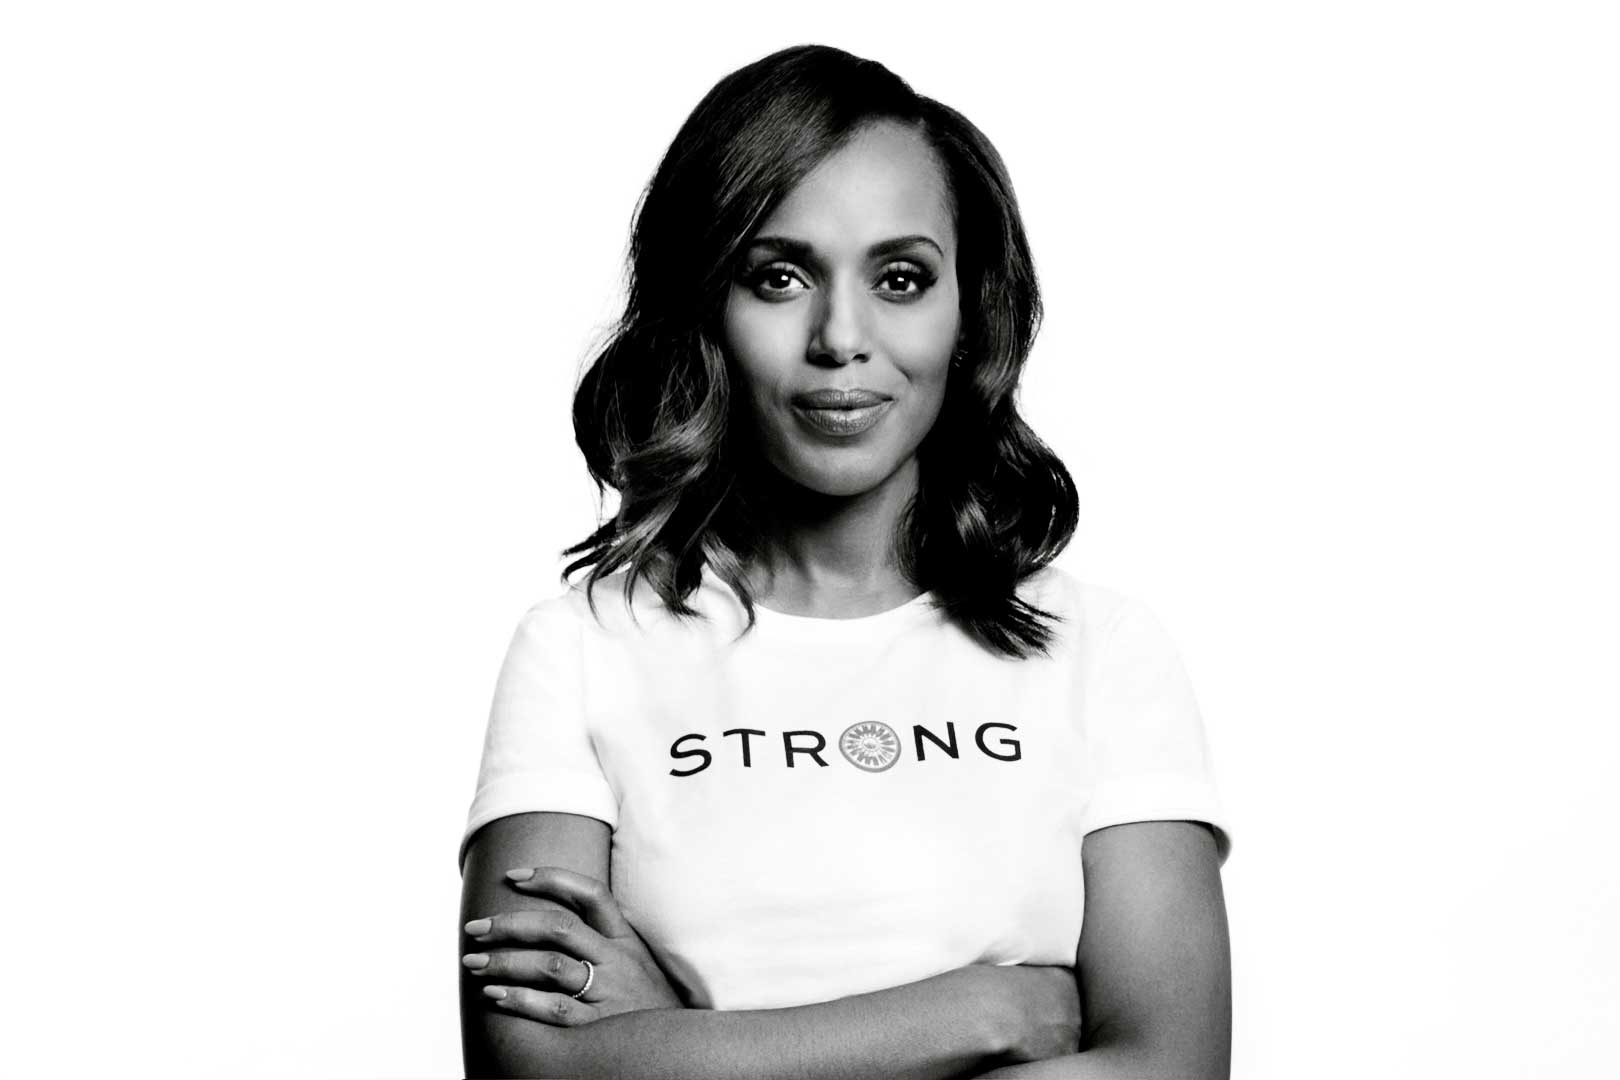 """Don't apologize."" Kerry Washington offers her advice to women in a Tory Burch Foundation PSA video that encourages women to Embrace Ambition on International Women's Day."